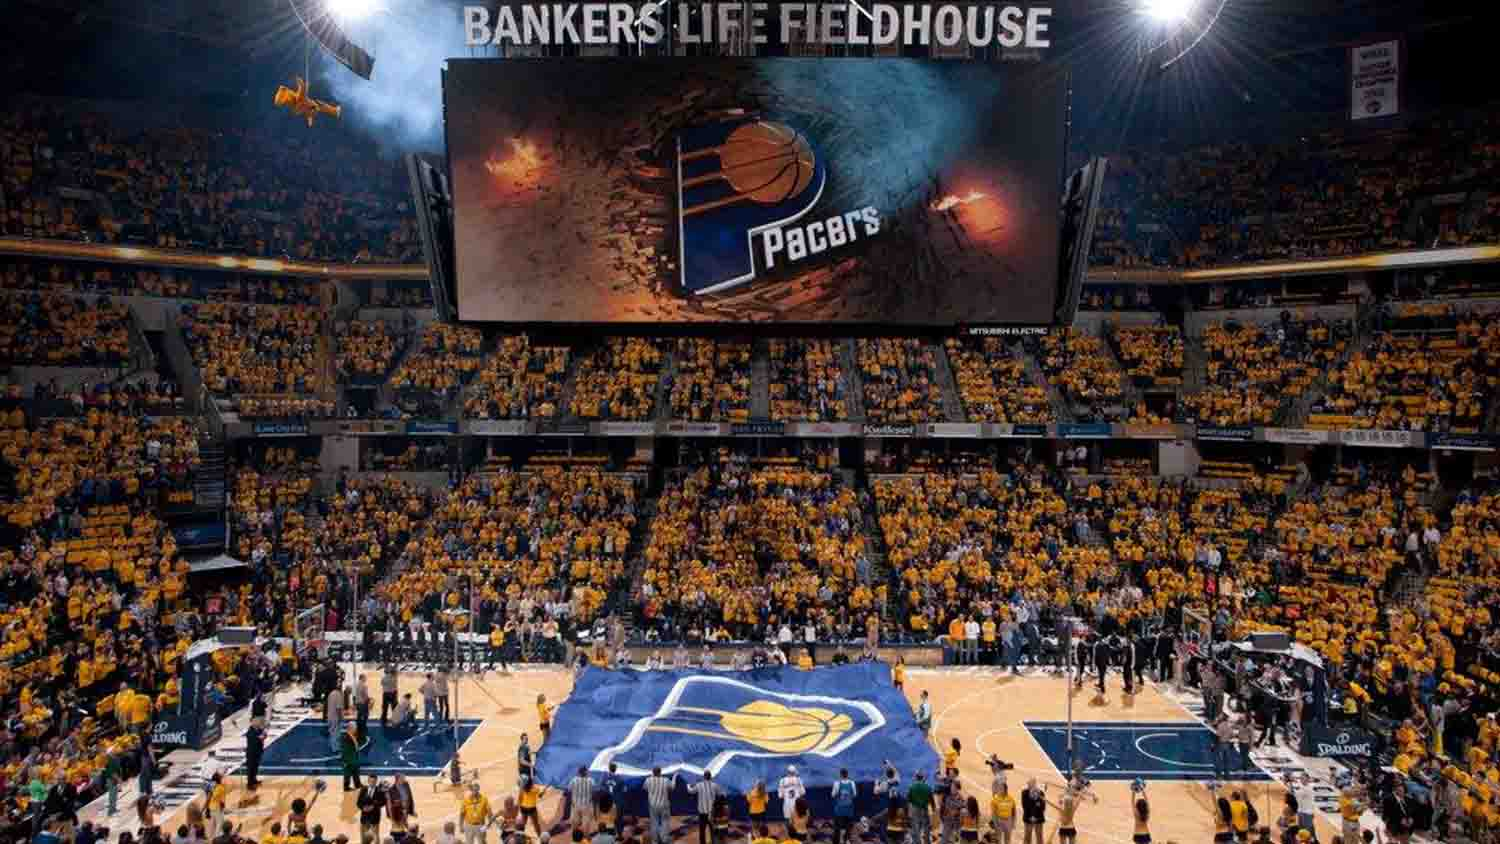 Bankers life fieldhouse 2